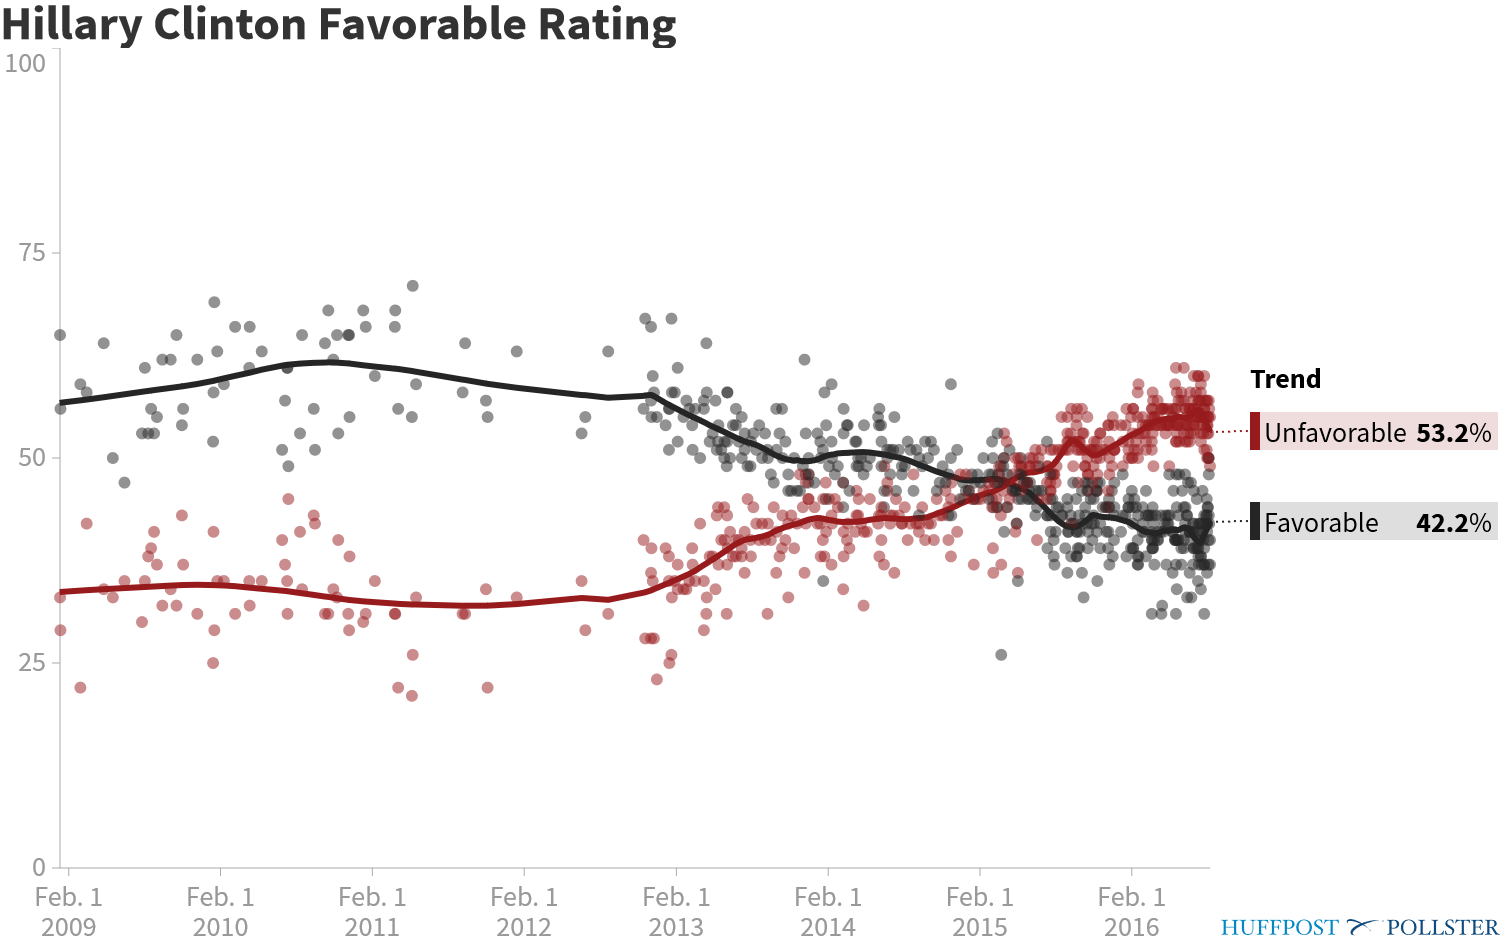 Hillary Clinton Favorable Rating